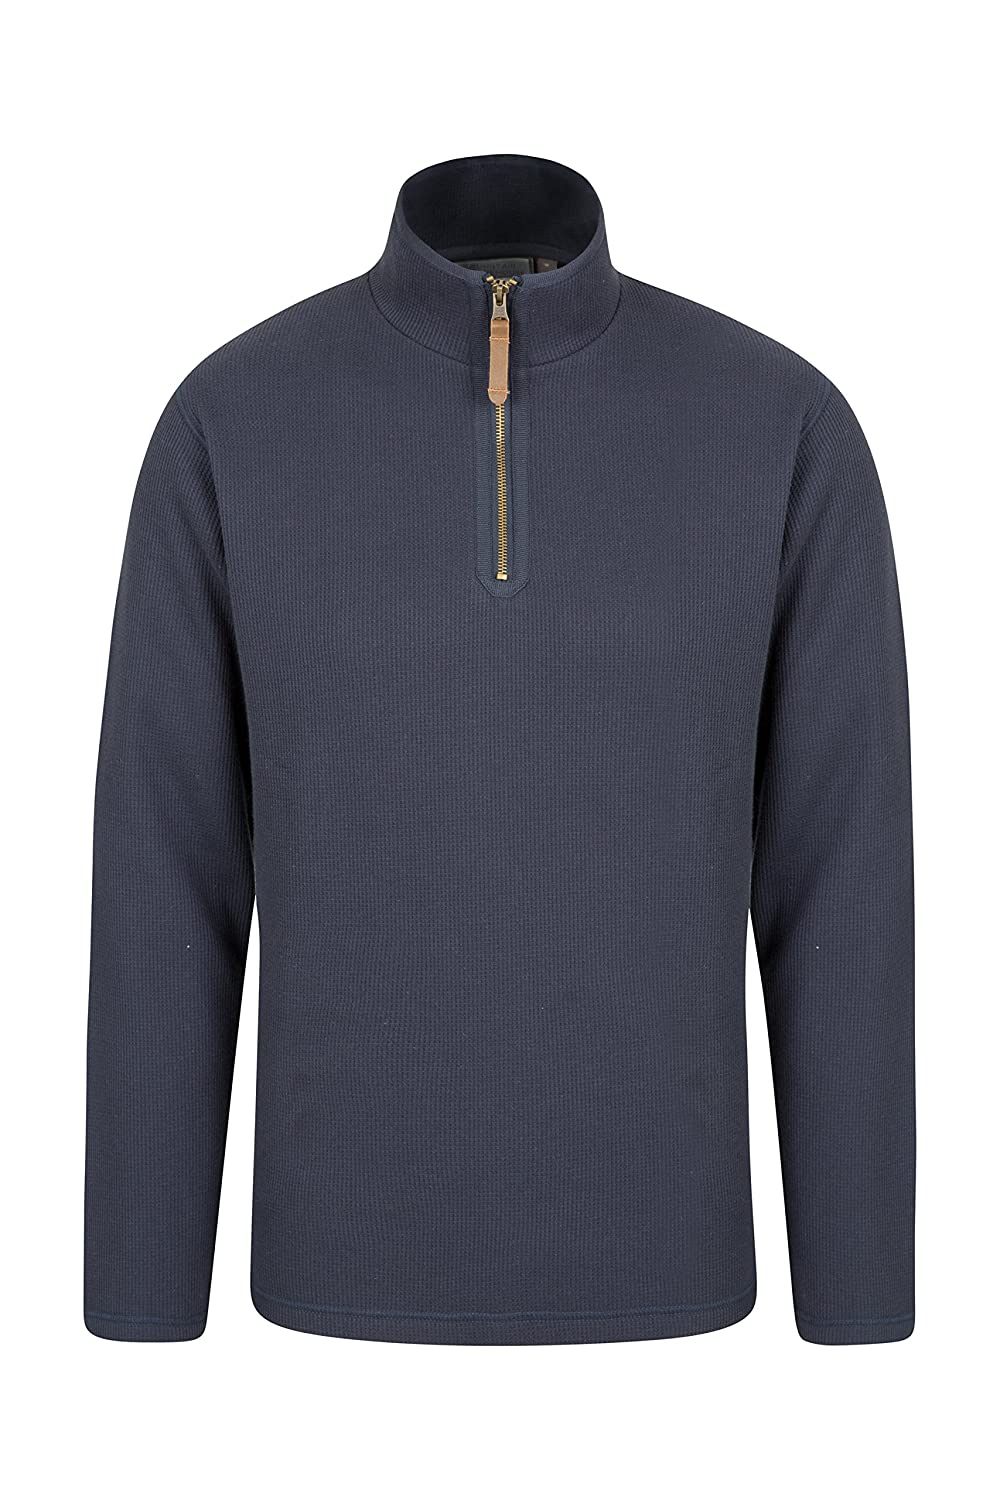 Mountain Warehouse Beta Mens Zip Neck Top - Warm All Season T-Shirt